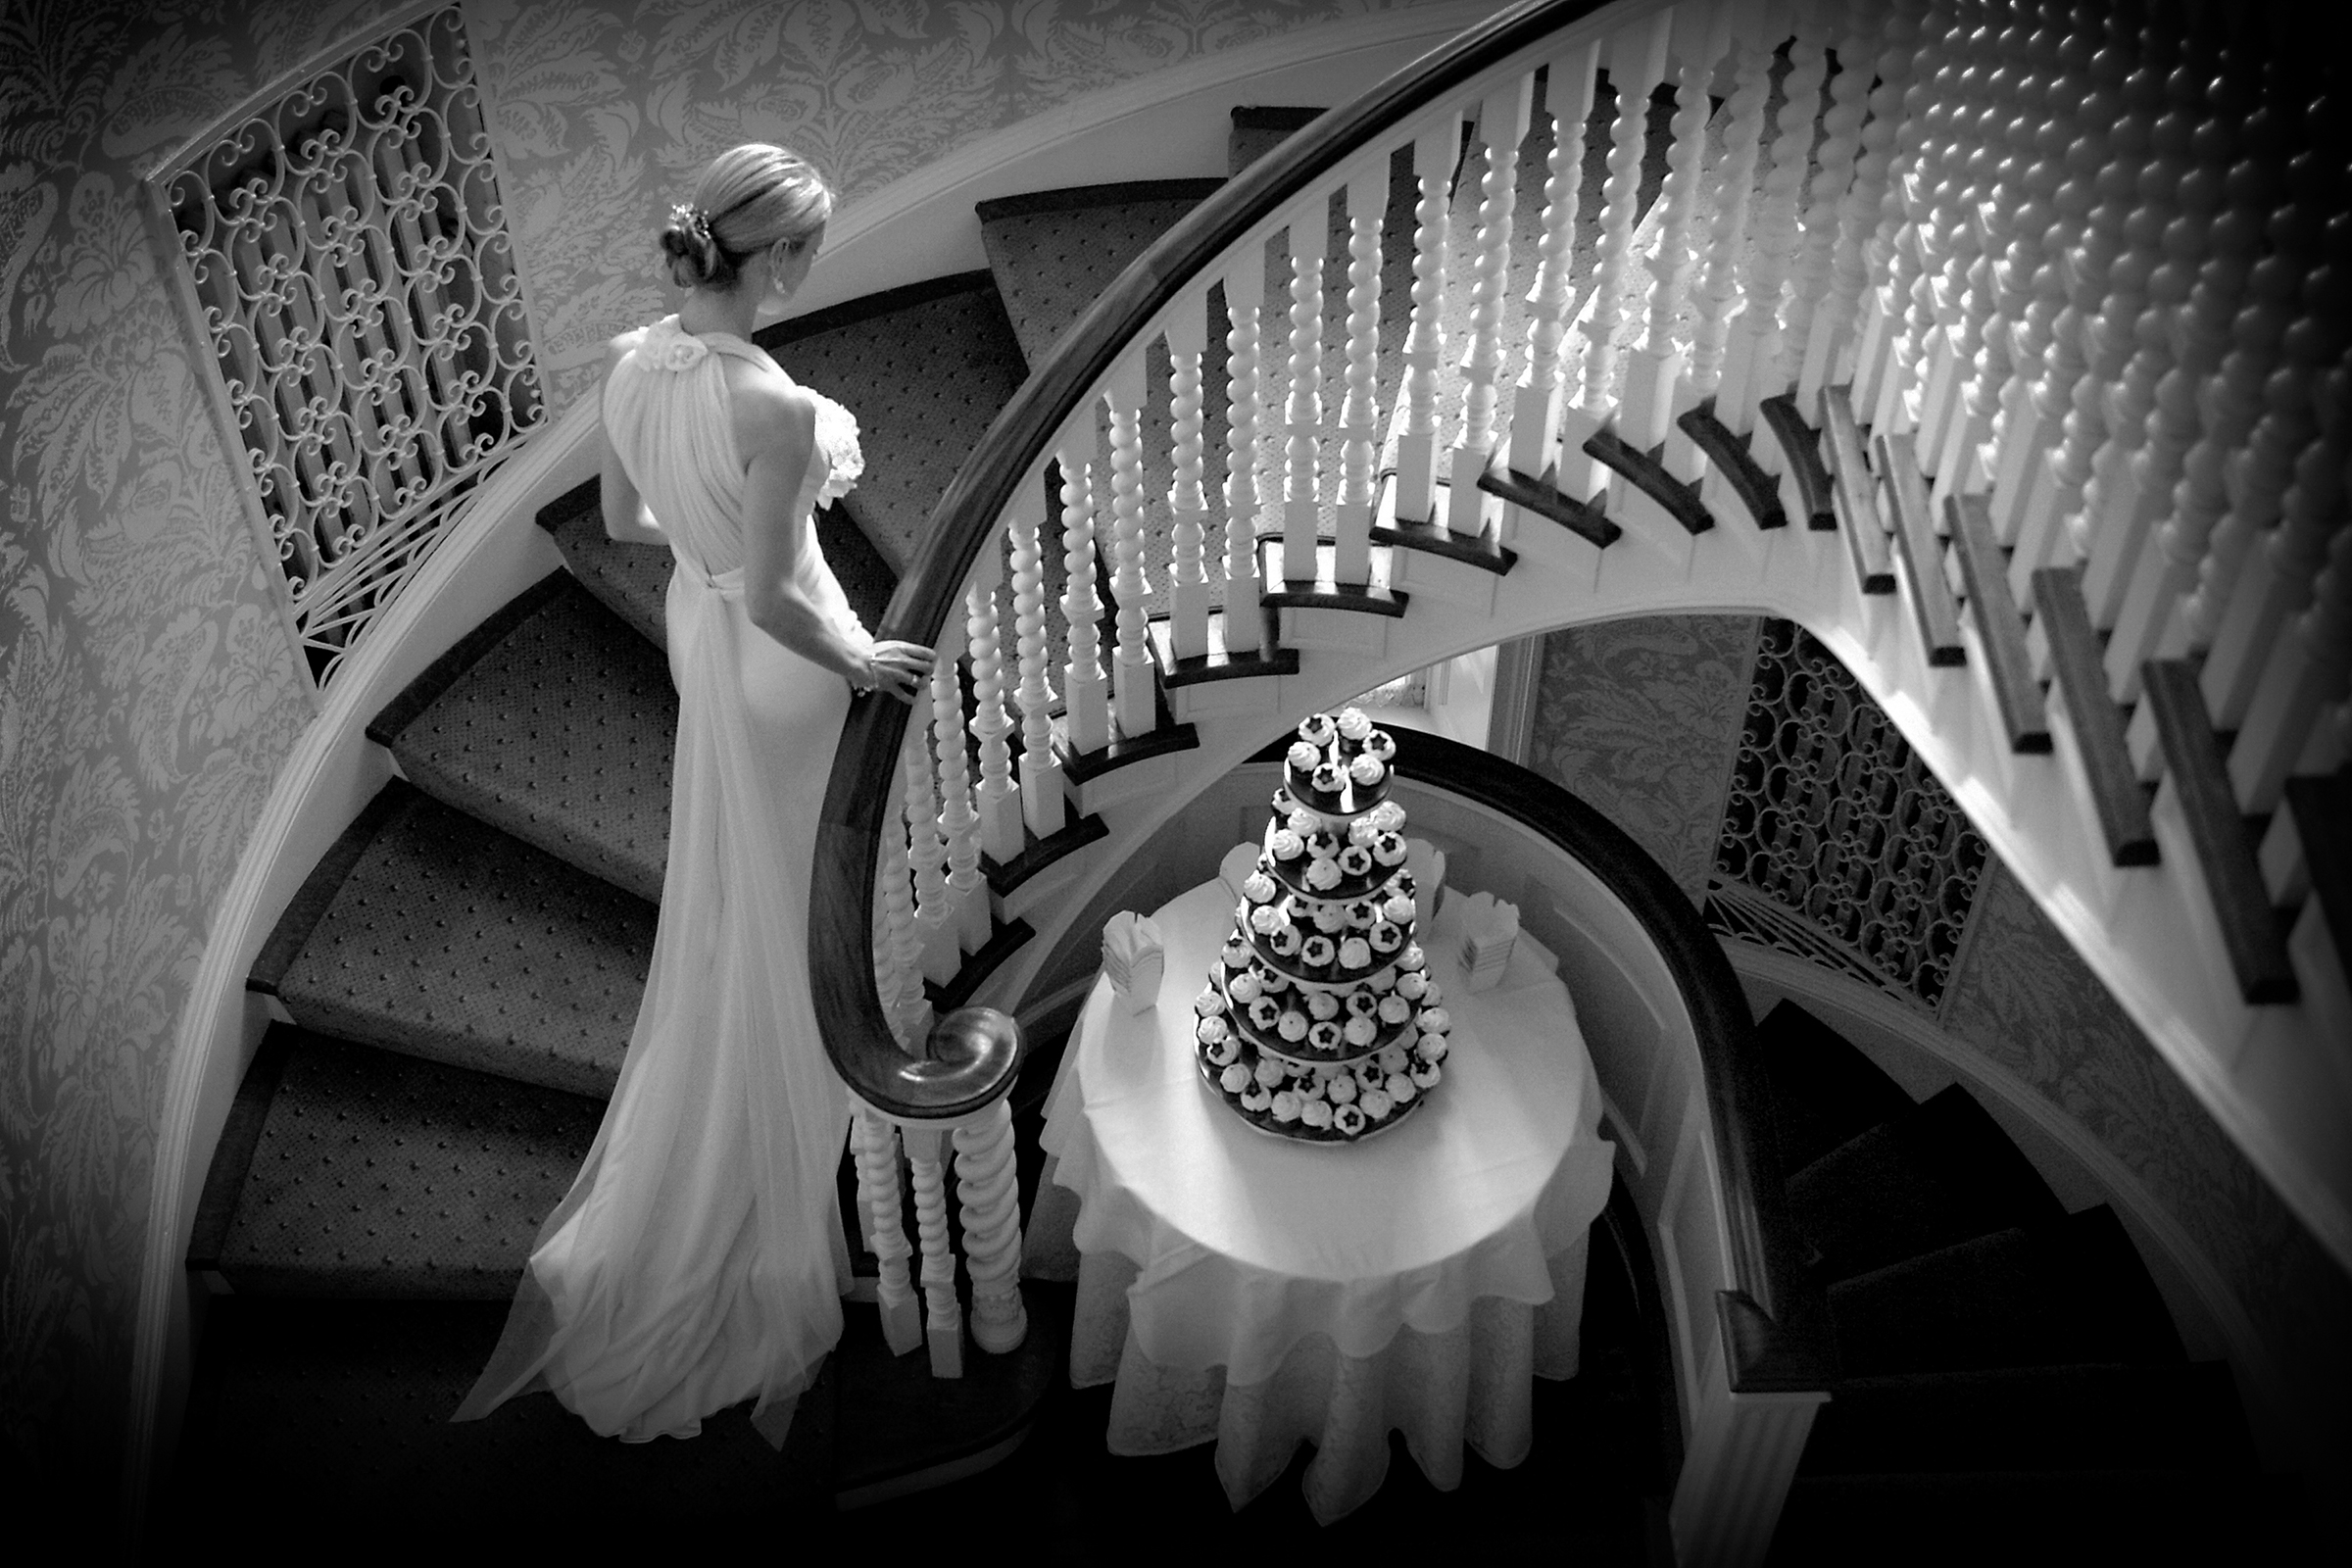 Bride ascending staircase - photo by Storey Wilkins Photography